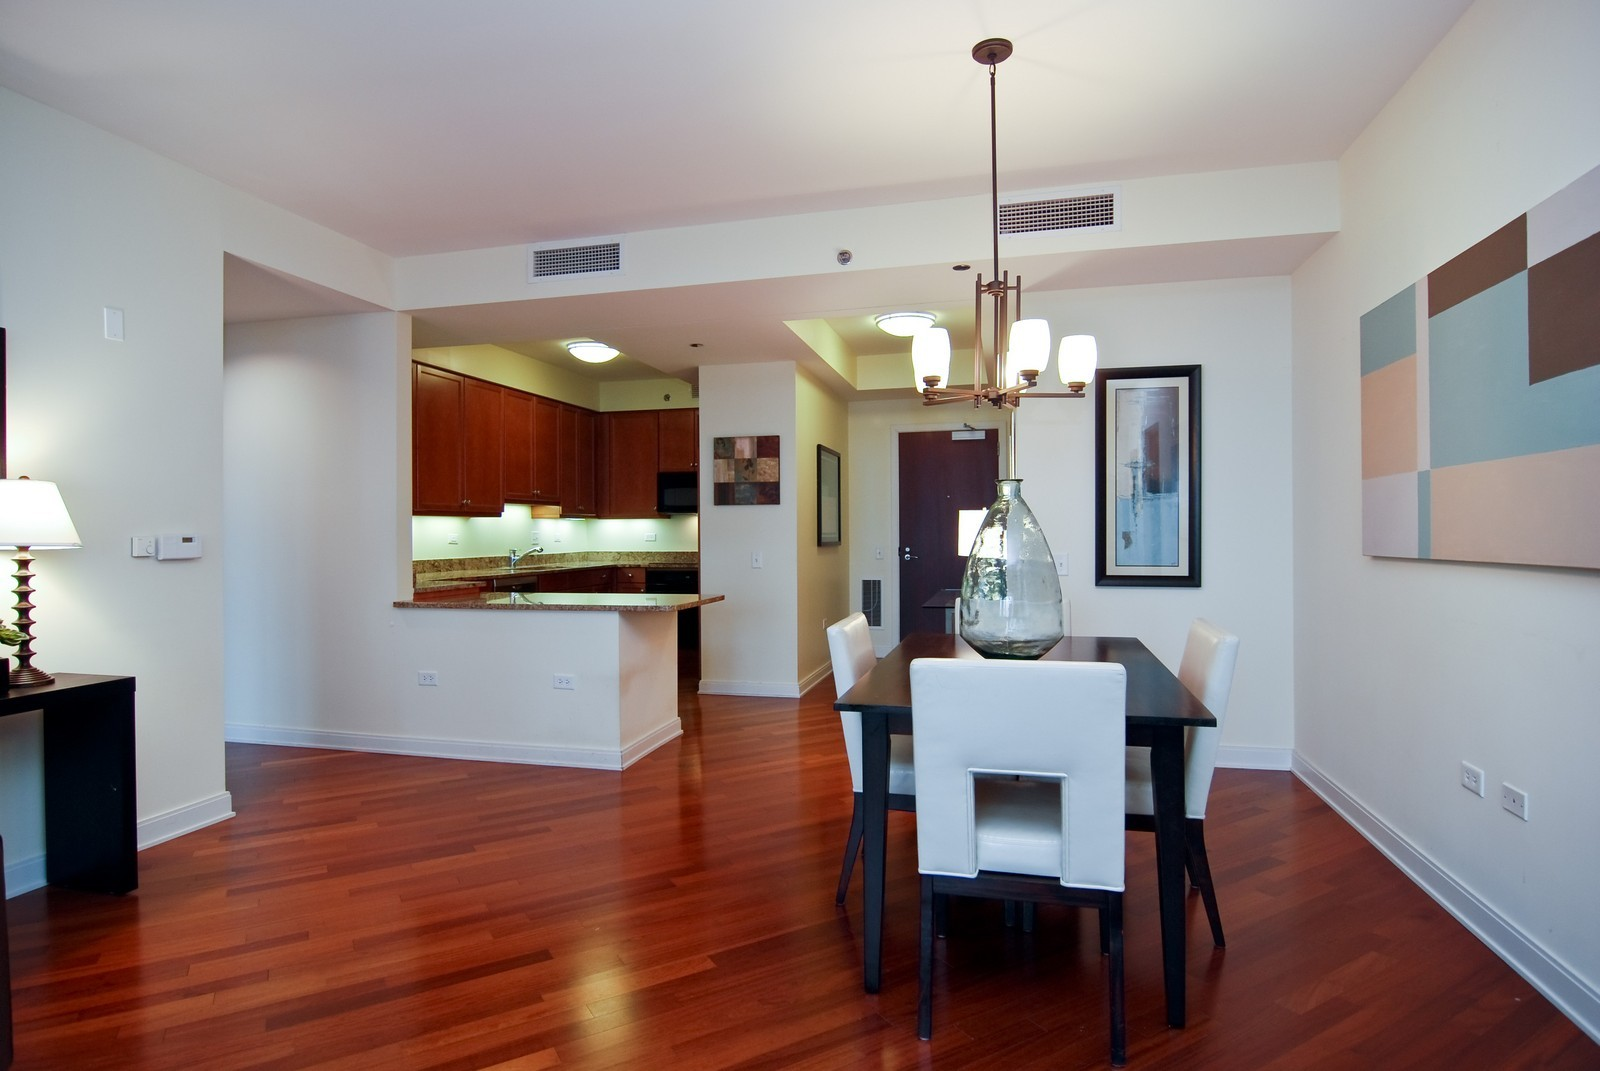 Real Estate Photography - 130 N. Garland Ct., 2903, Chicago, IL, 60602 - Kitchen / Dining Room